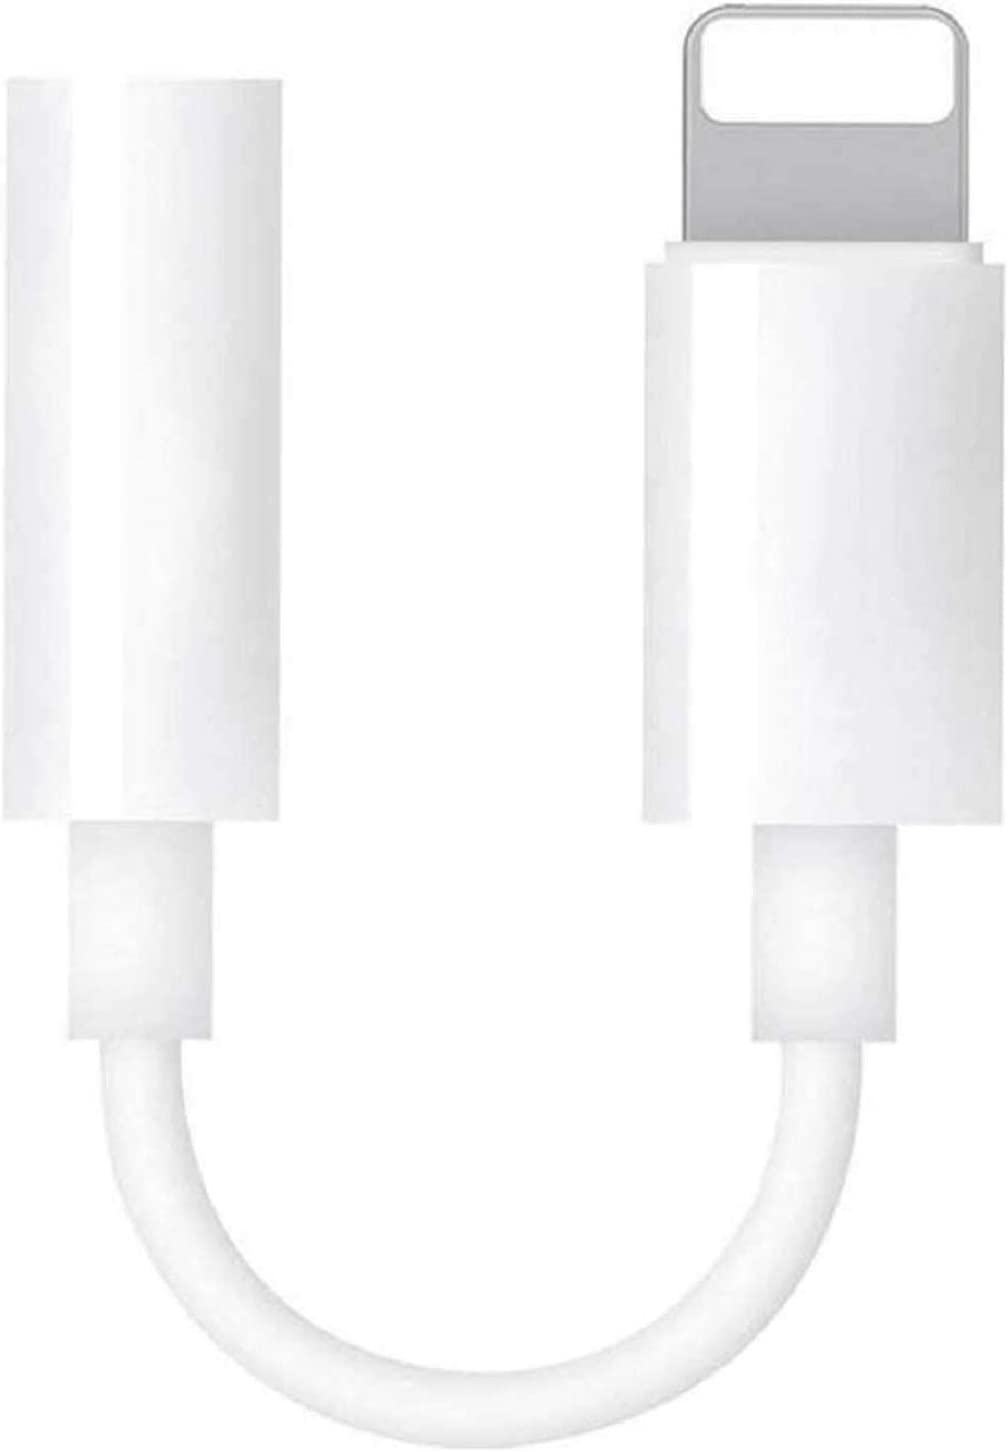 [Apple MFi Certified] 3.5mm Headphone Adapter for iPhone,Lightning to Headphone Jack Adapter aux iPhone Dongle Earphone Jack Connector,Compatible with iPhone 7/7 Plus/8/8 Plus/X/Xs/Xs Max/XR/11, iPad